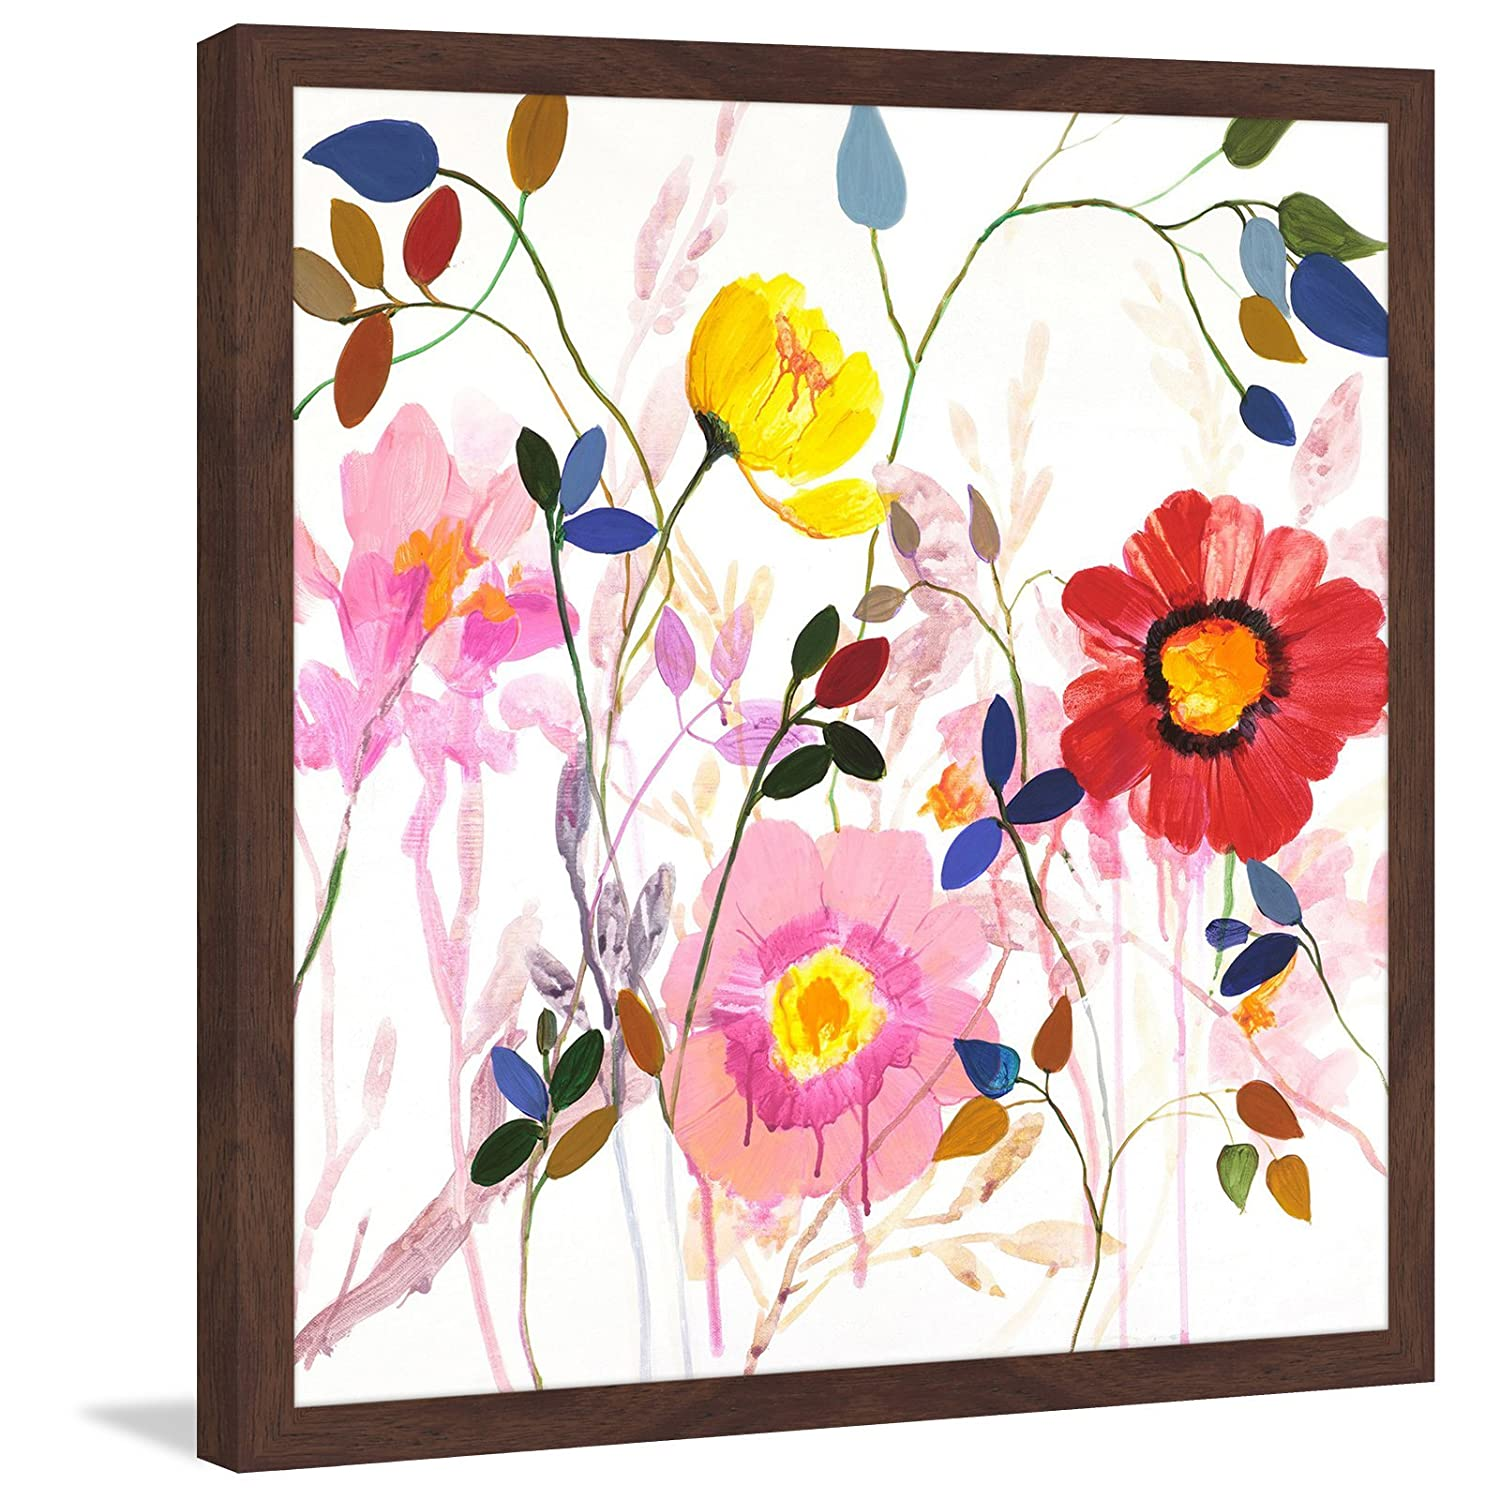 Marmont Hill Woodland Garden by Julie Joy Framed Painting Print 24x24 Multicolor